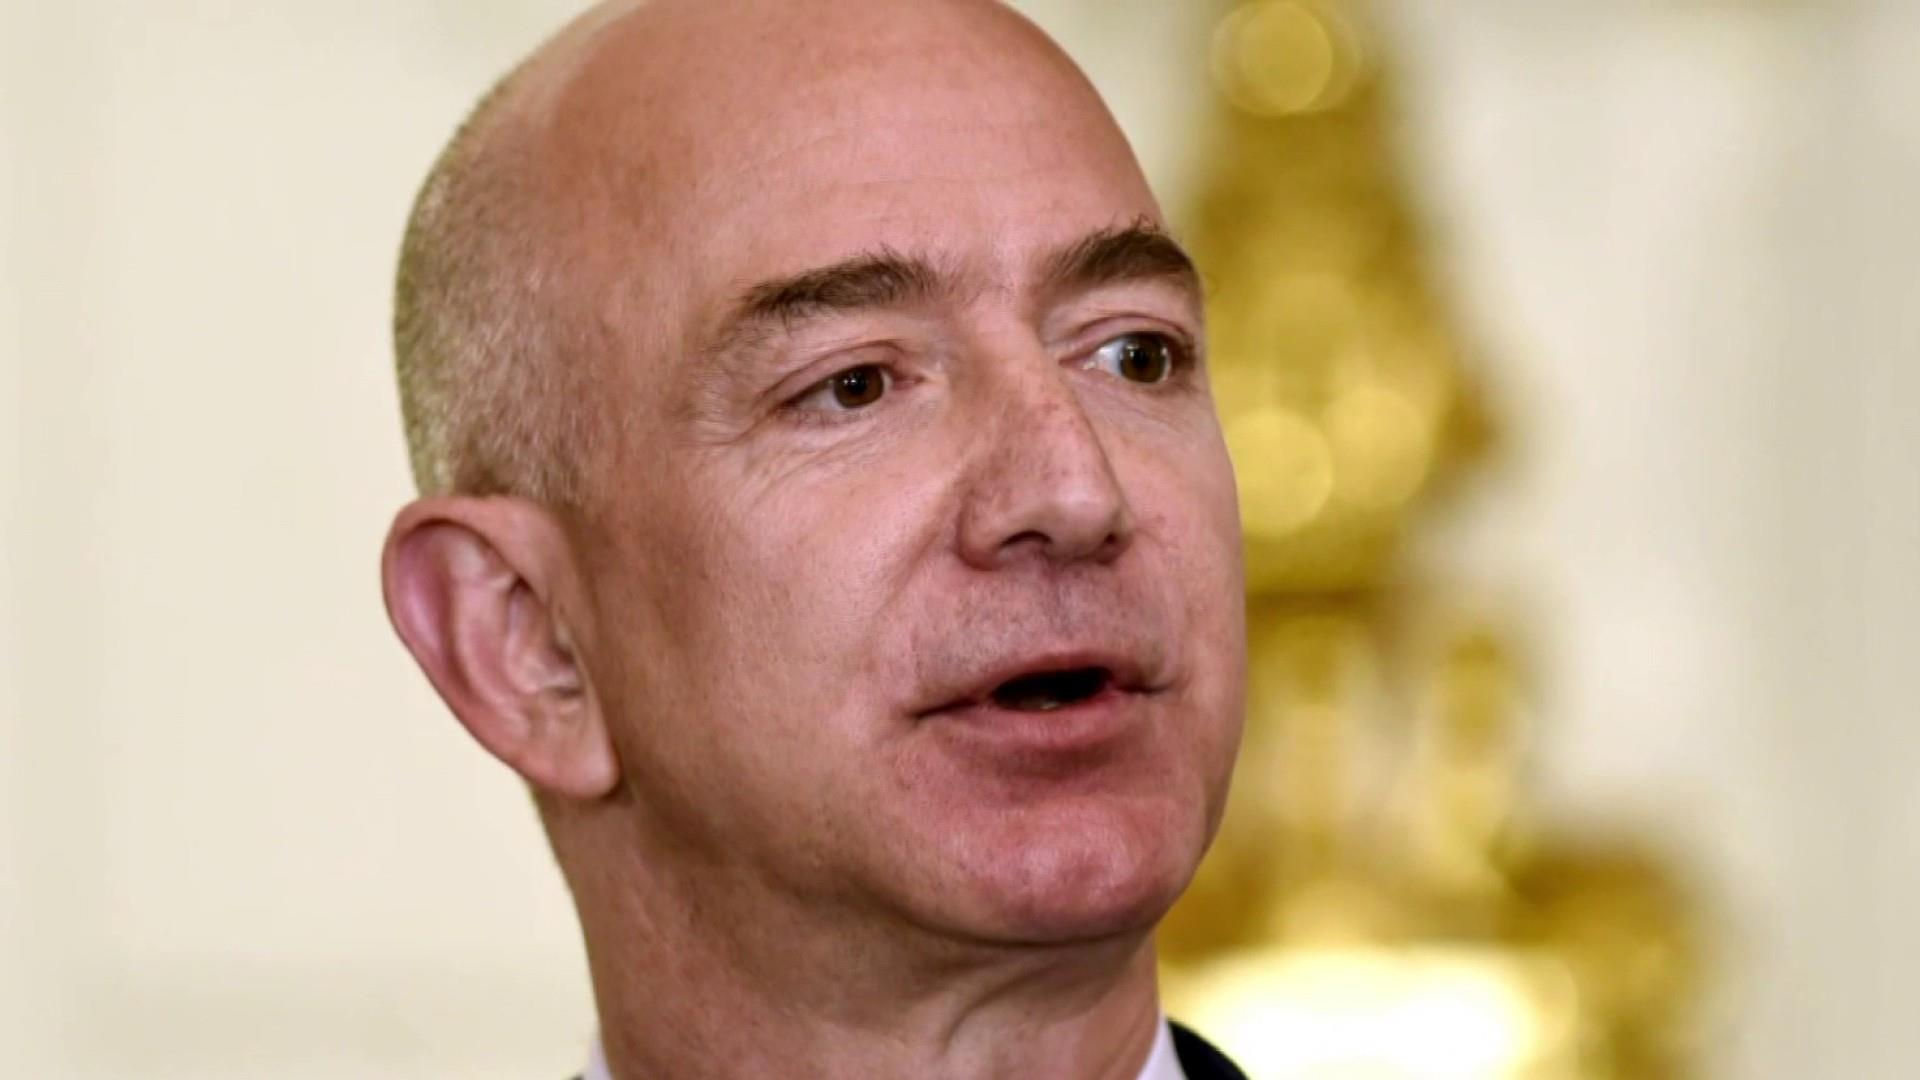 Report: Saudis gained access to Bezos' phone, private info